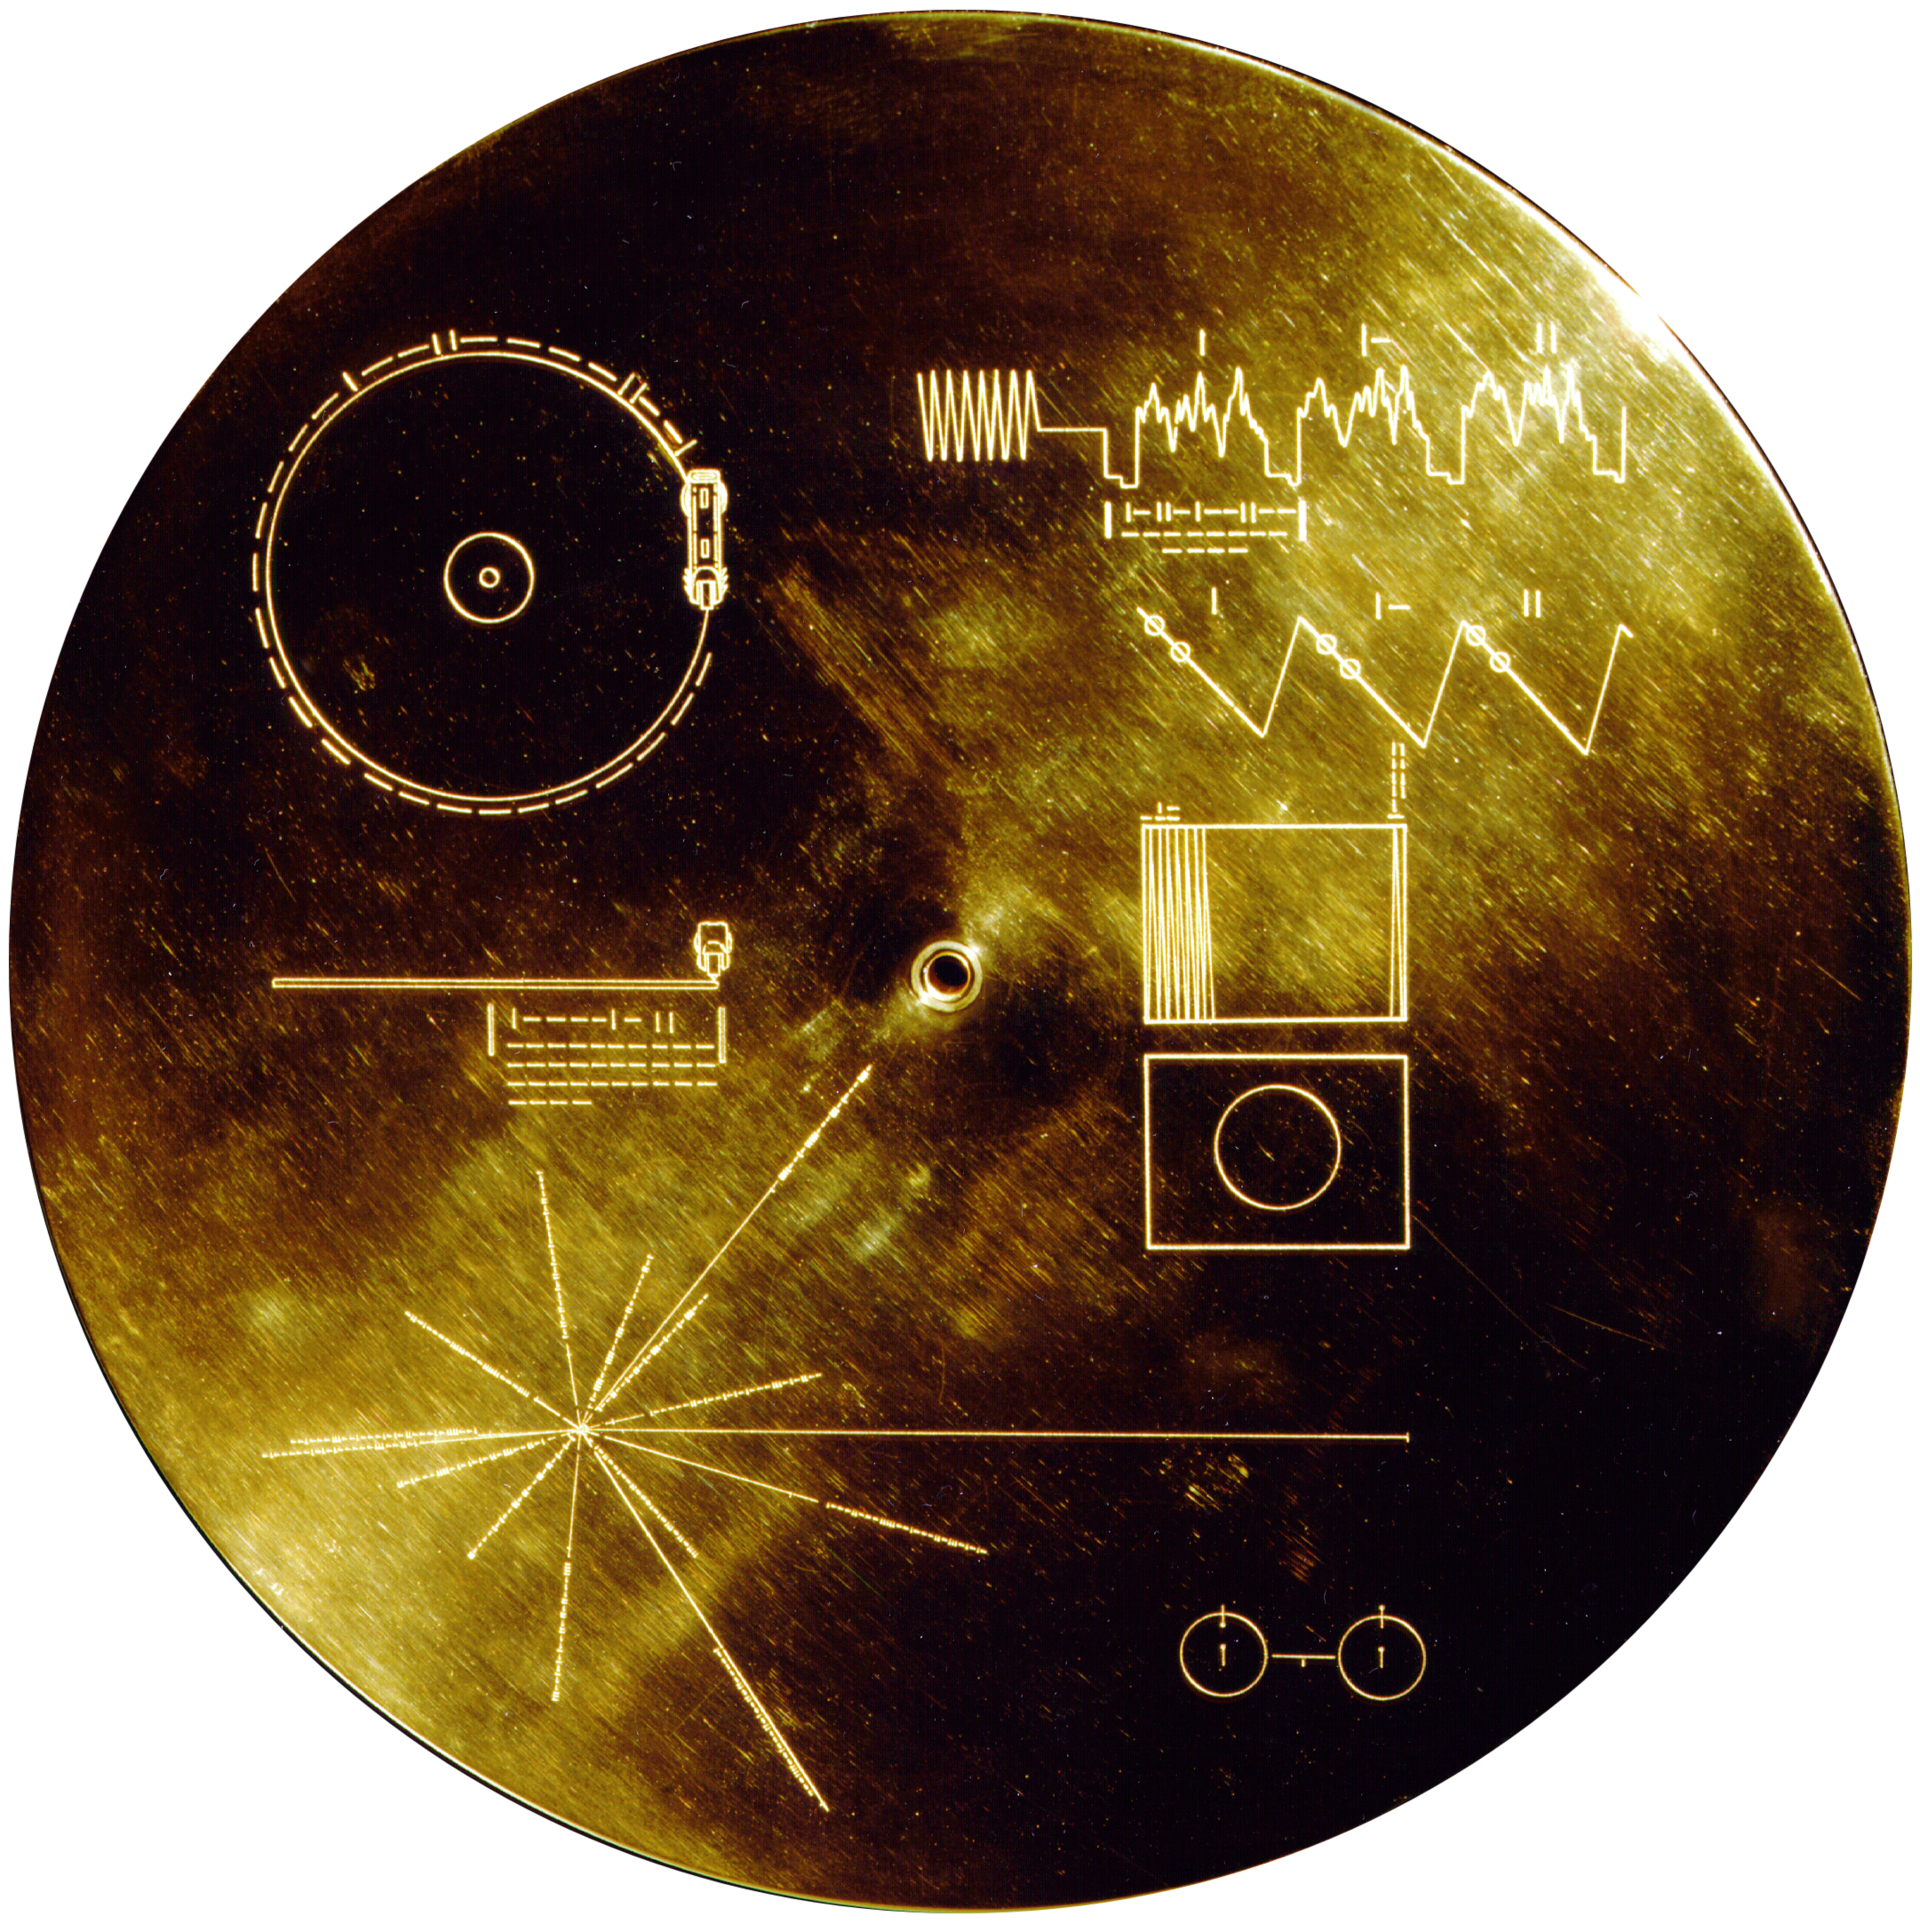 Voyager_Golden_Record_fx